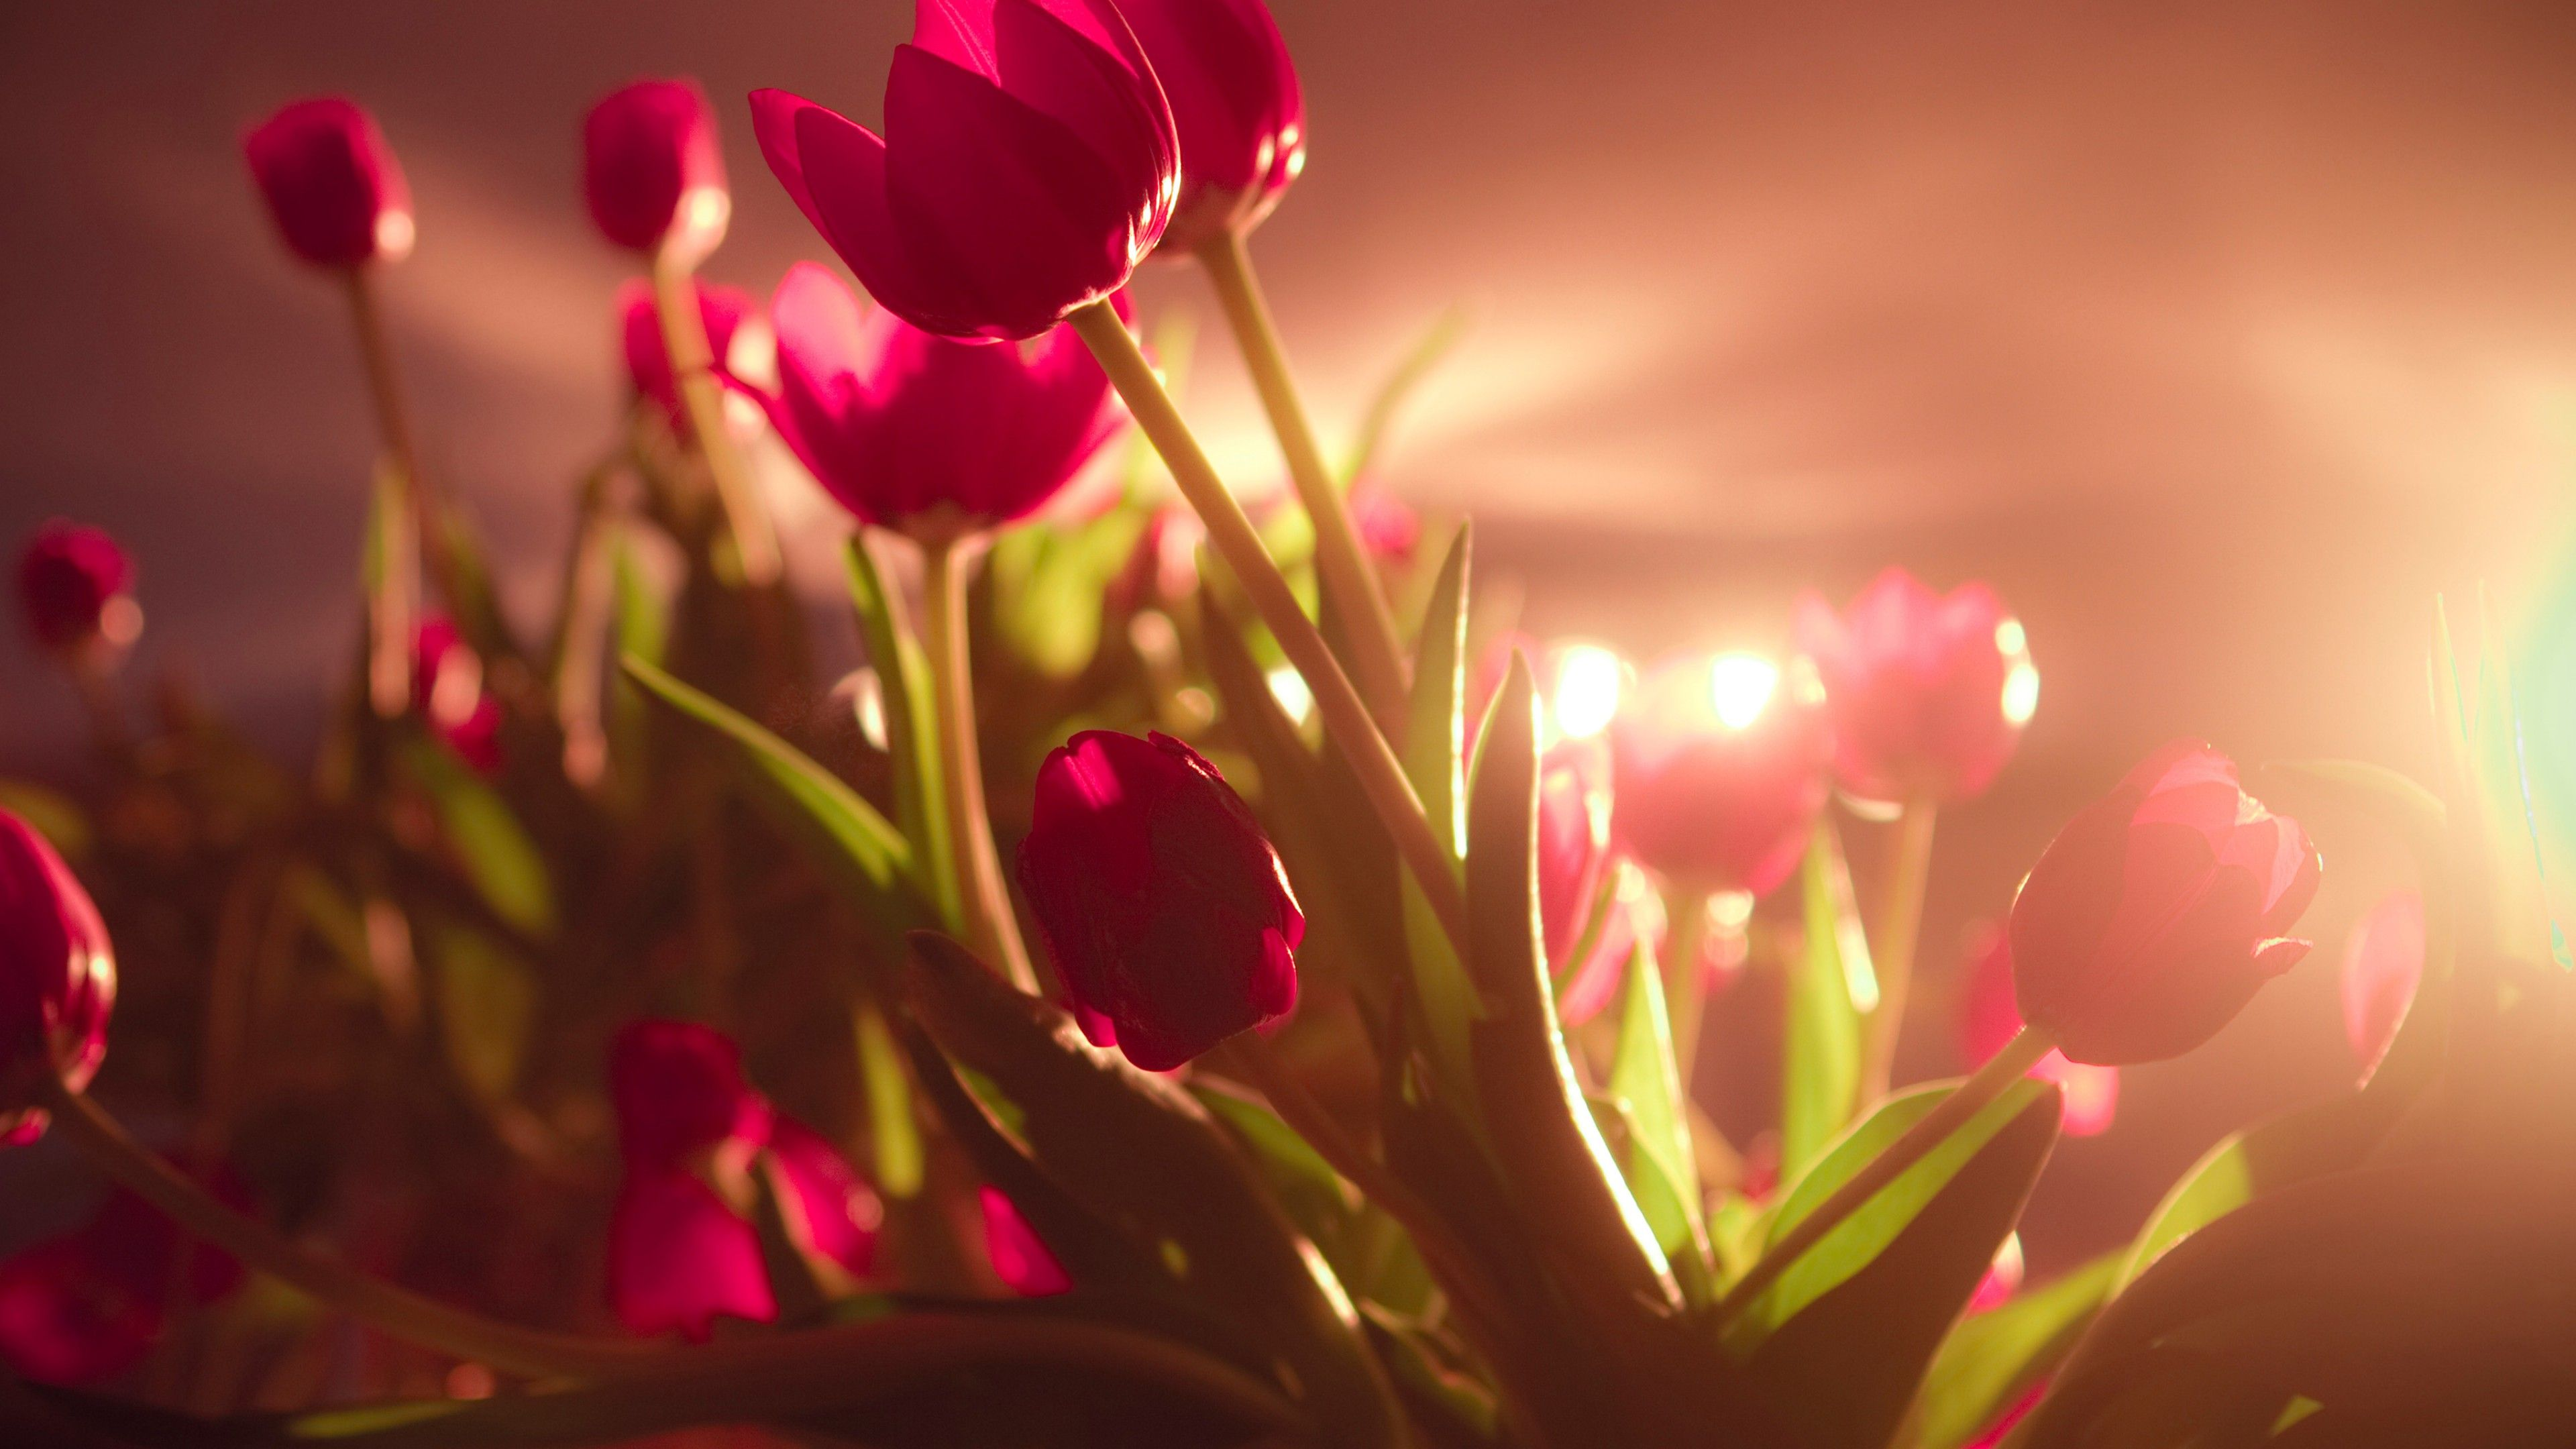 3840x2160 Wallpaper tulips, 4k, HD wallpaper, red, Valentine's Day, February ...